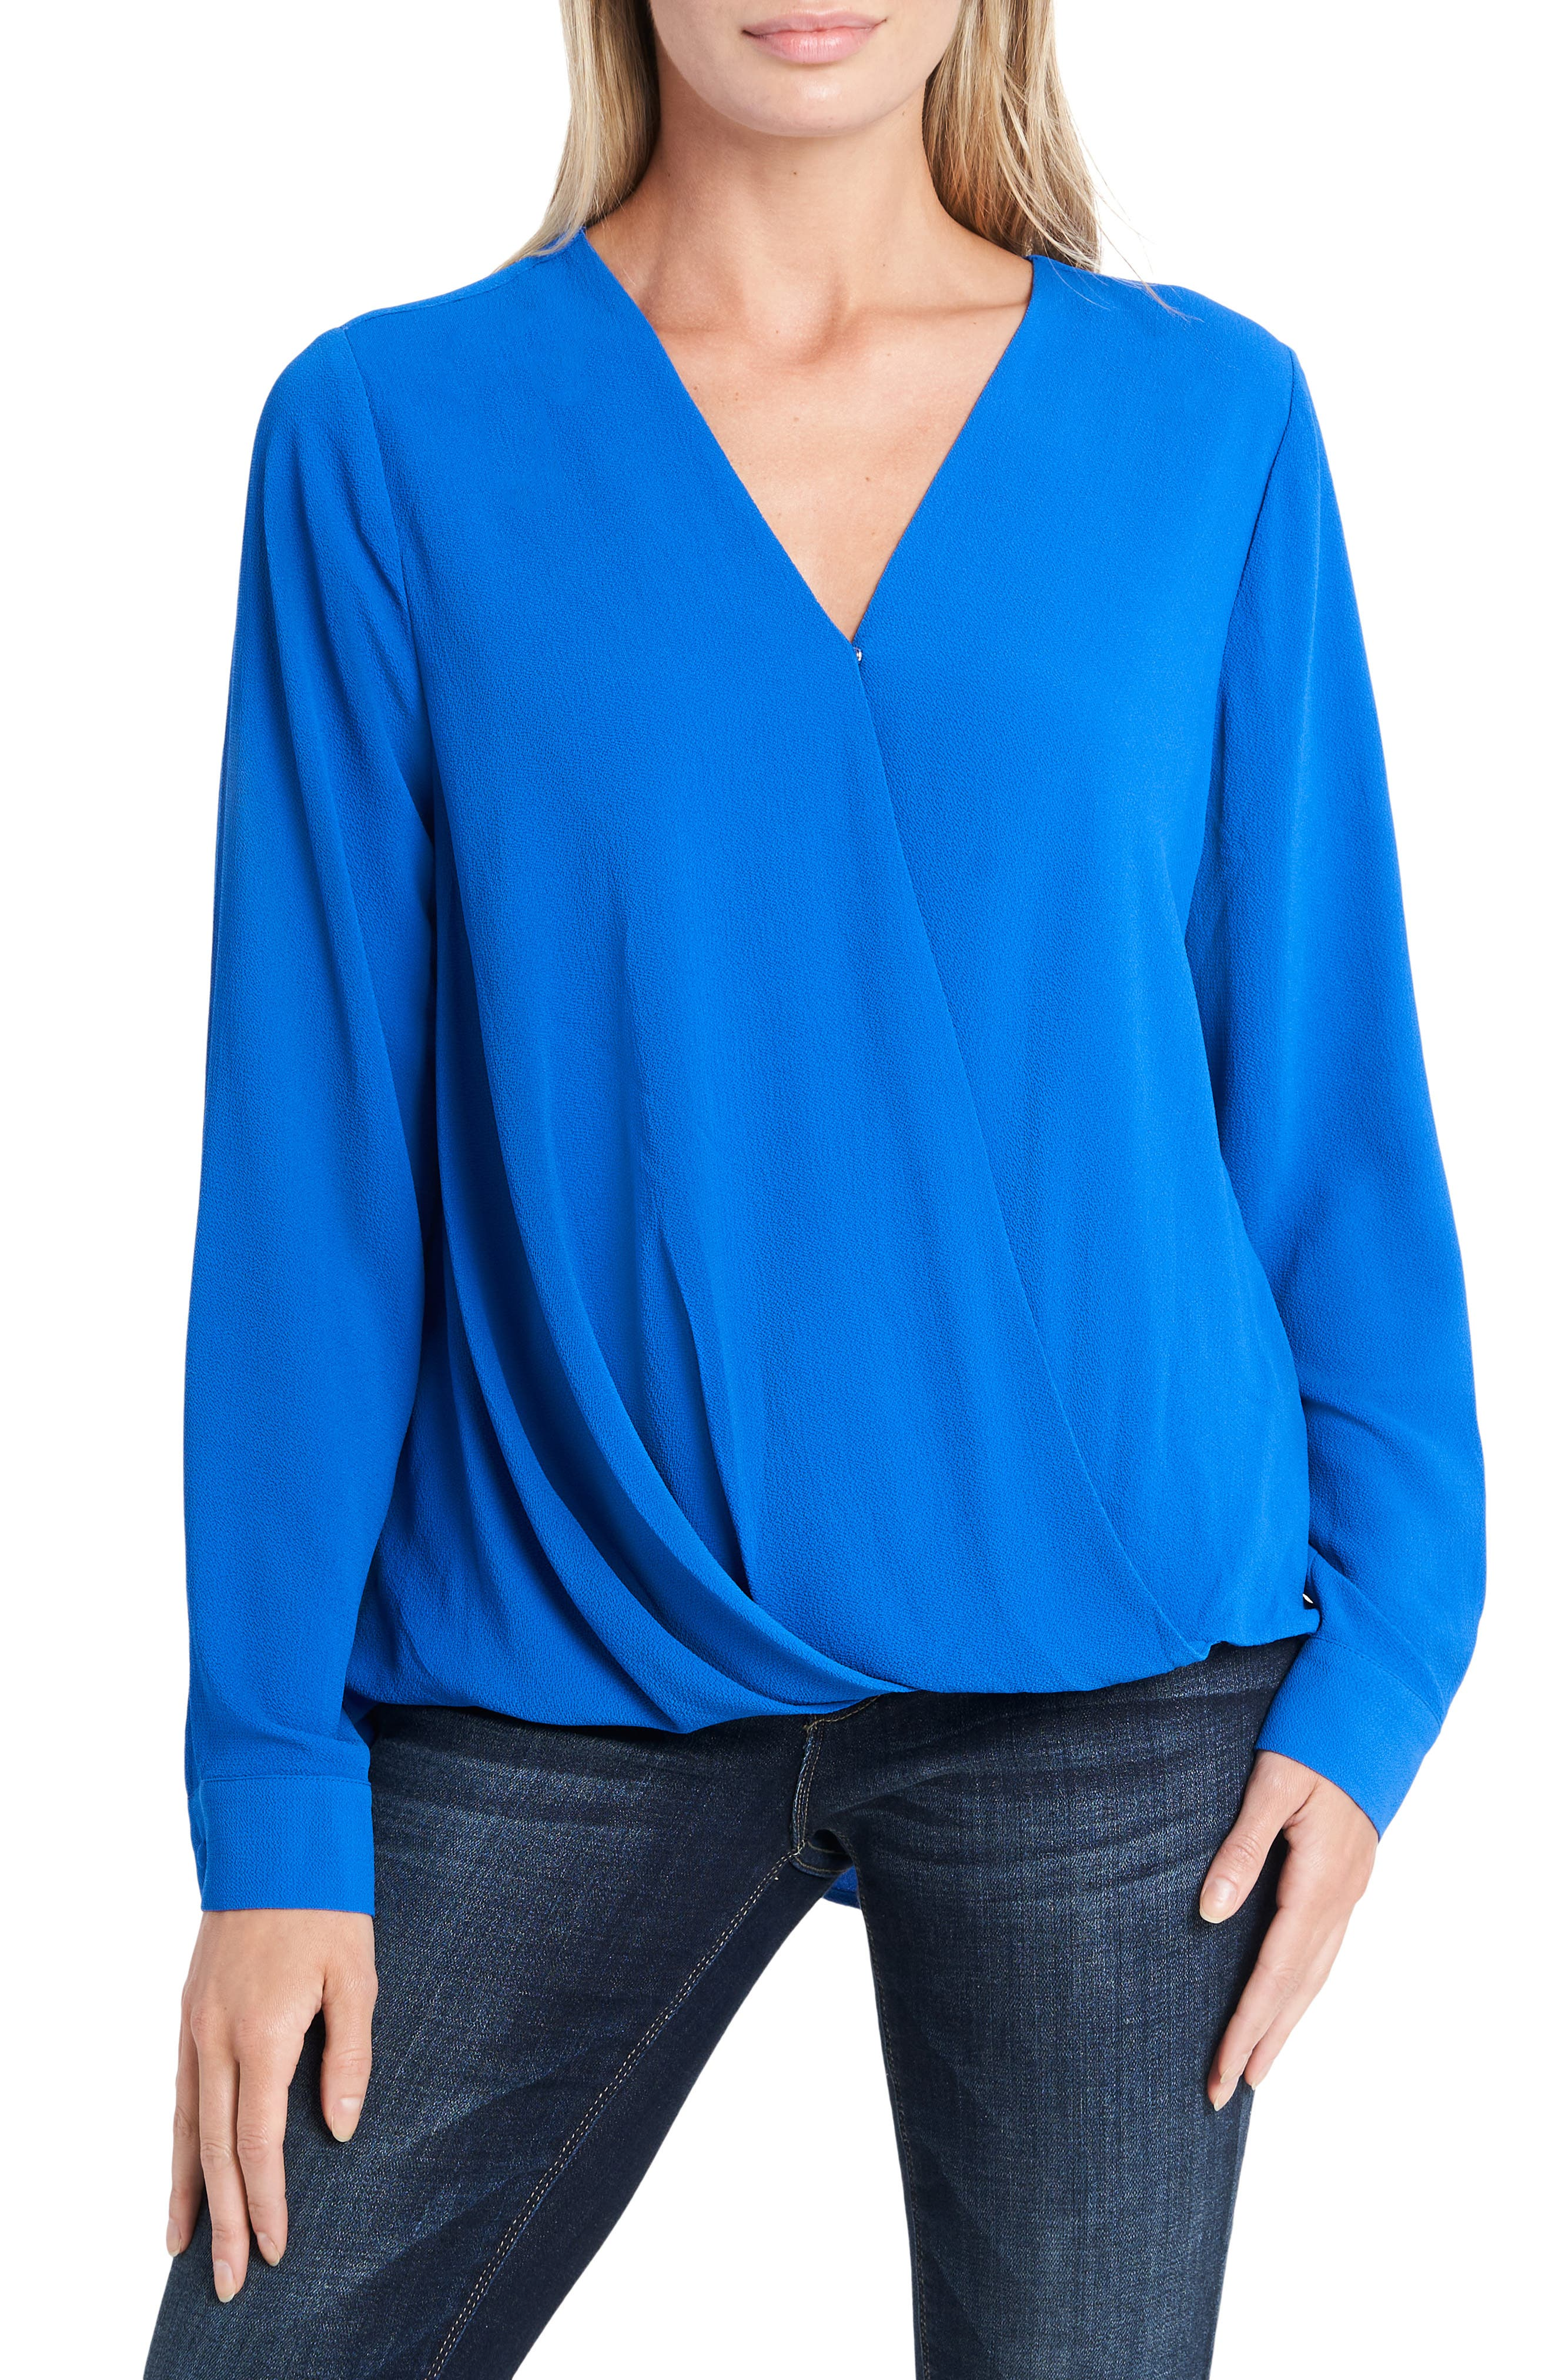 Vince Camuto Long Sleeve Faux Wrap Blouse   Nordstrom